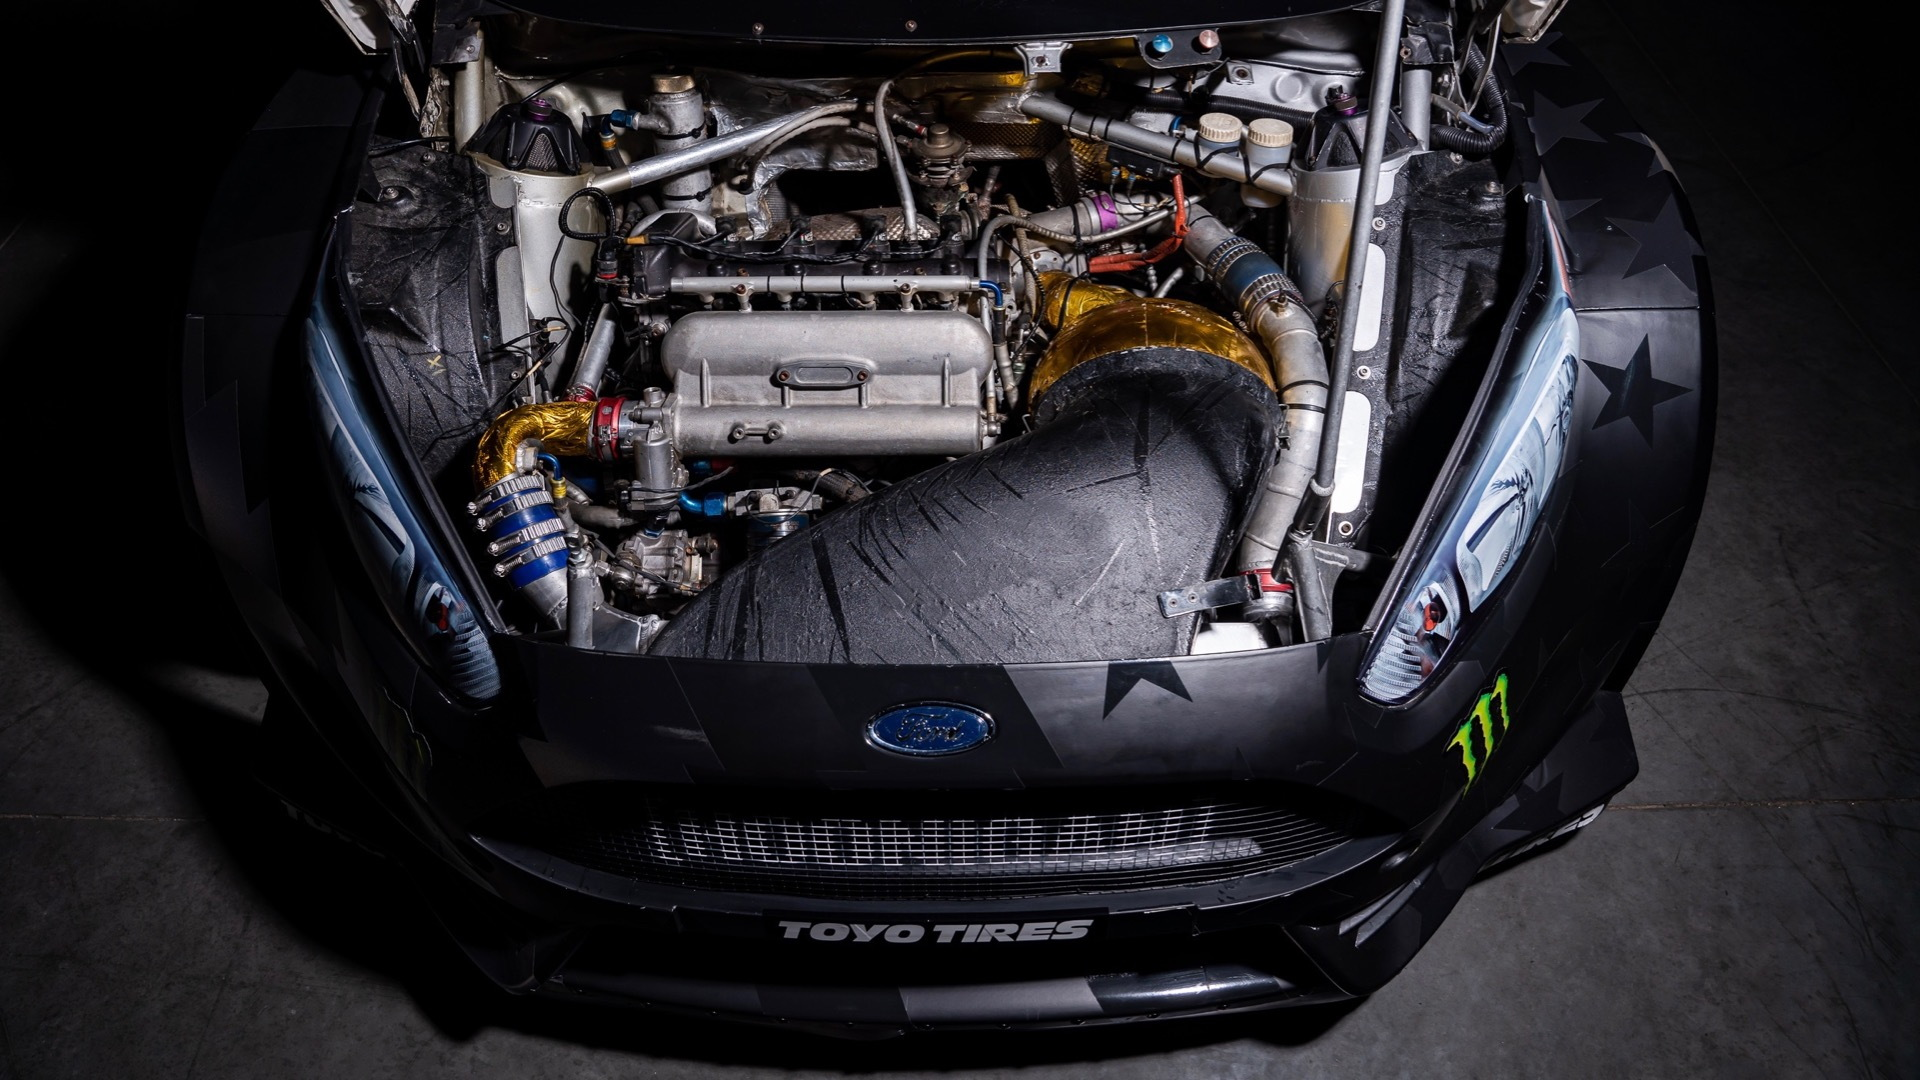 Ken Block's 2013 Ford Fiesta rally car (Photo by LBI Limited)